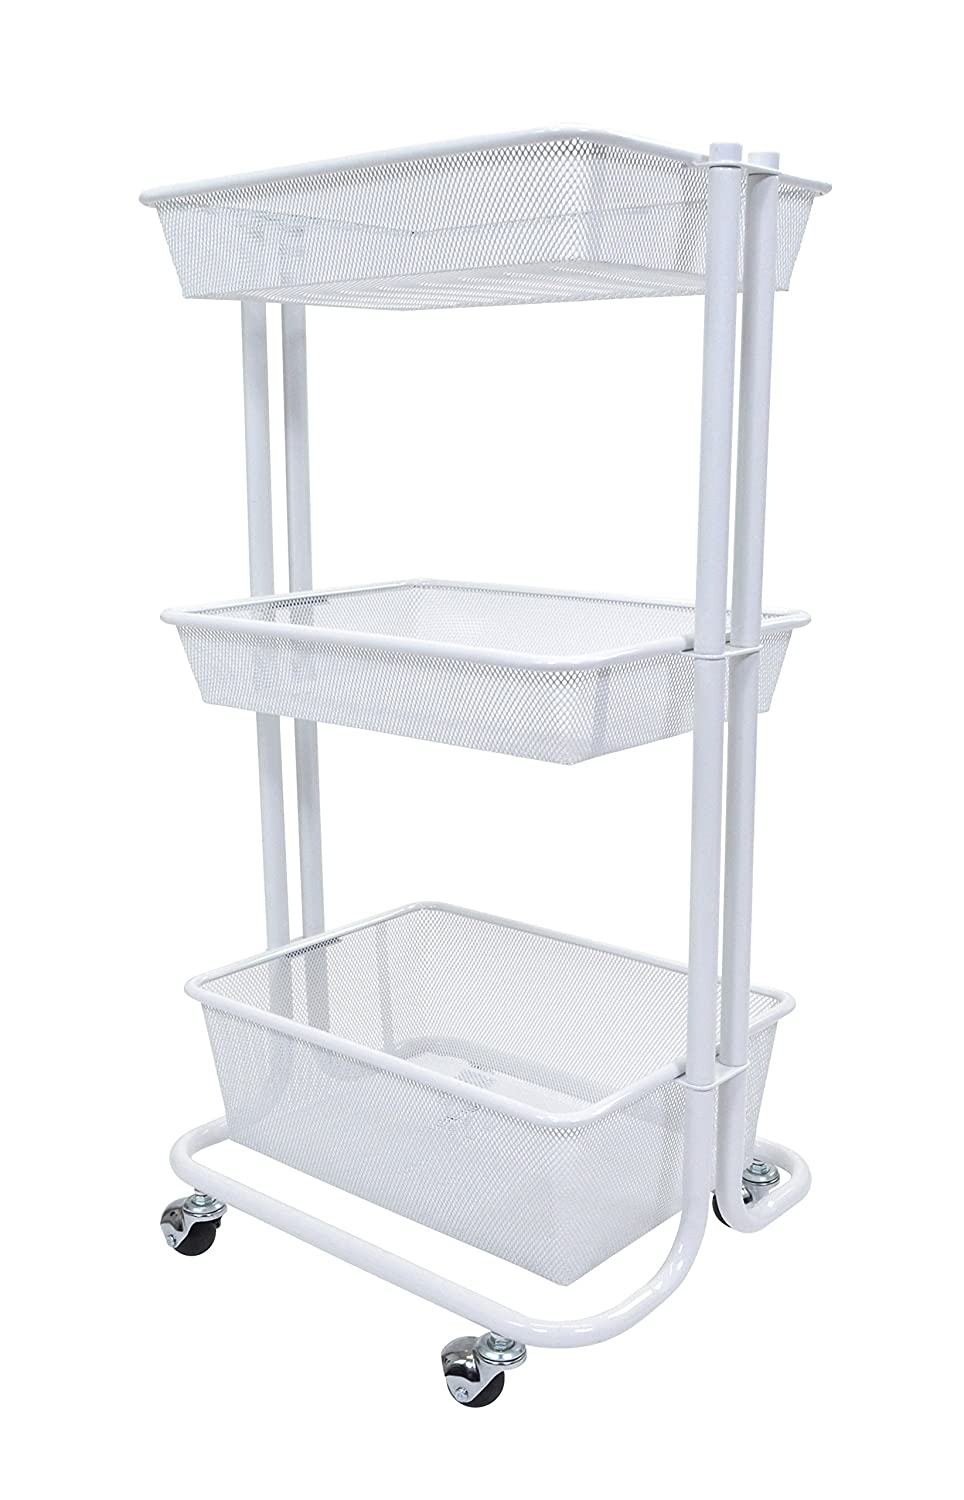 Amazon.com : Home Kitchen Bedroom Storage Utility Cart (White) : Office  Products